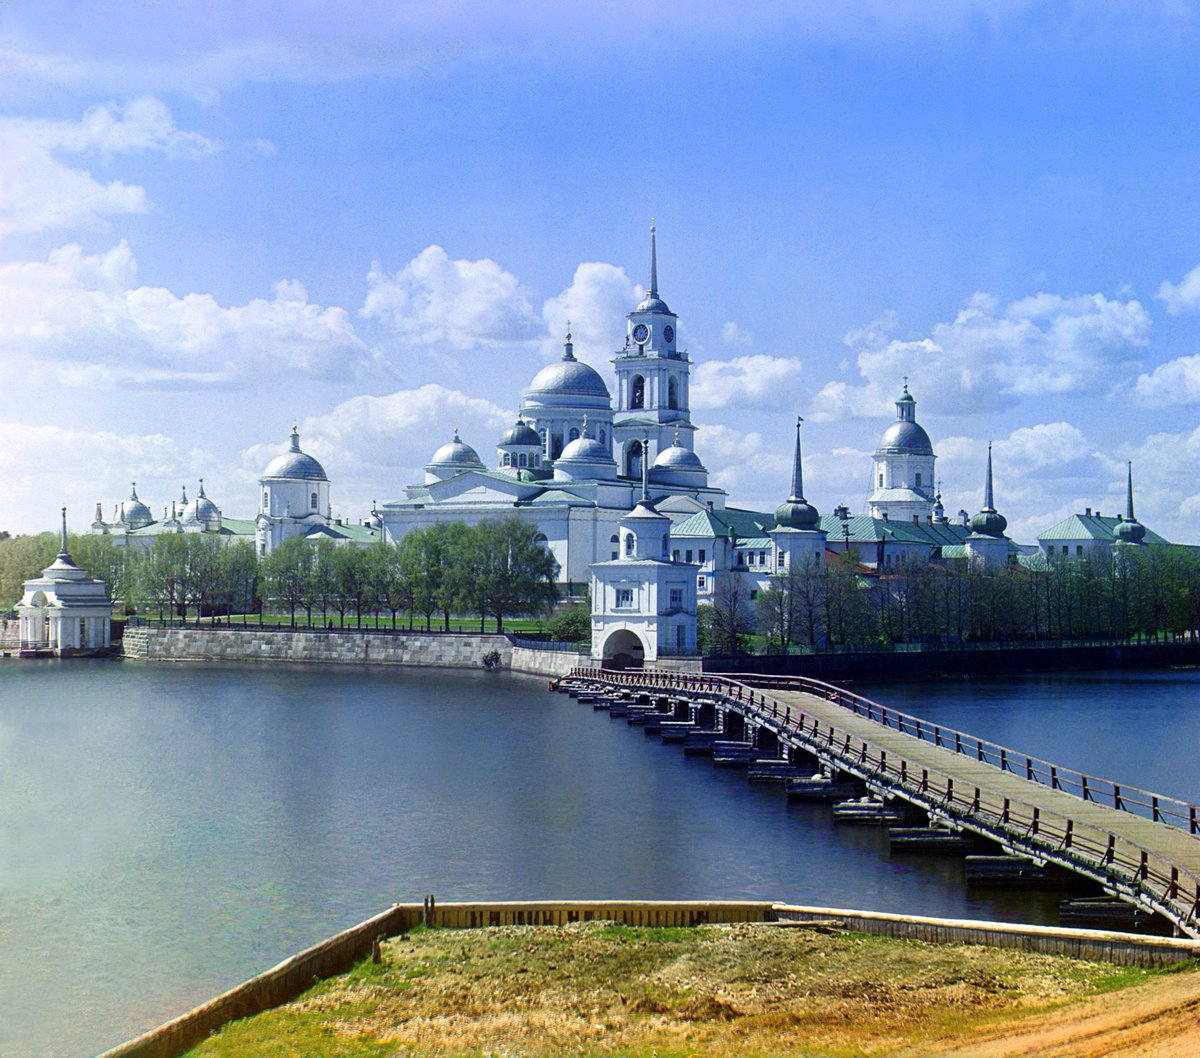 It's like peering through the window of a time machine: a magnificent photograph taken 110 years ago. It is the Monastery of St. Nilus on Stolbny Island in Lake Seliger, Russia, taken in 1910 by Sergey Prokudin-Gorsky. It is original colour (not colourised). https://t.co/iePpKHr2OR